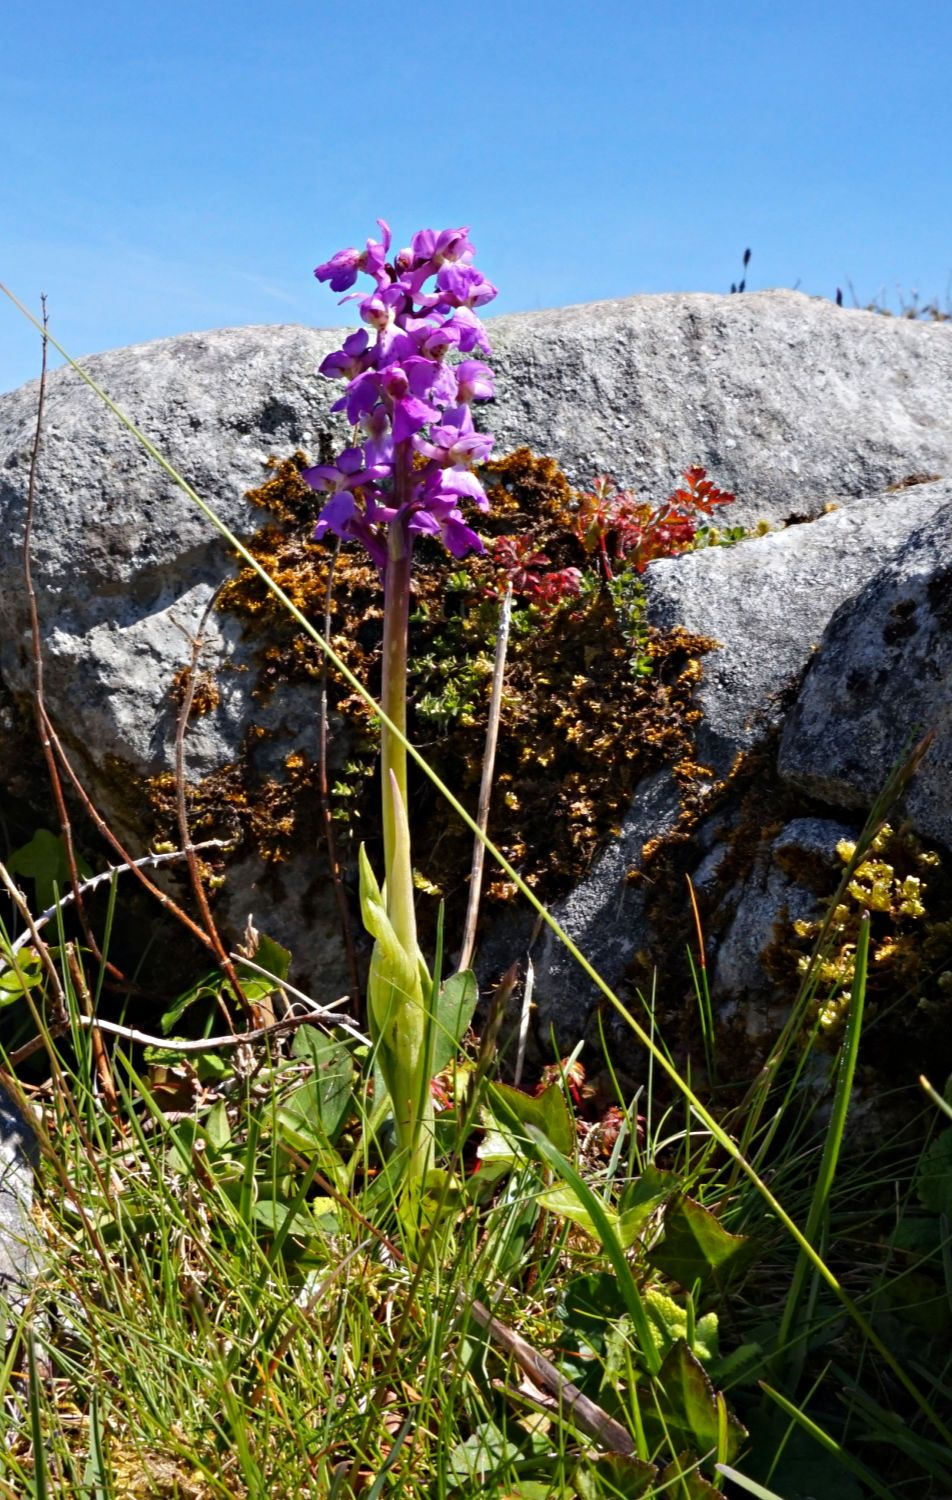 There are 20+ orchid species in The Burren. This might be the early purple orchid, but mostly only because it was early (in May) and it's kinda purple. Then again, it might be some other orchid.